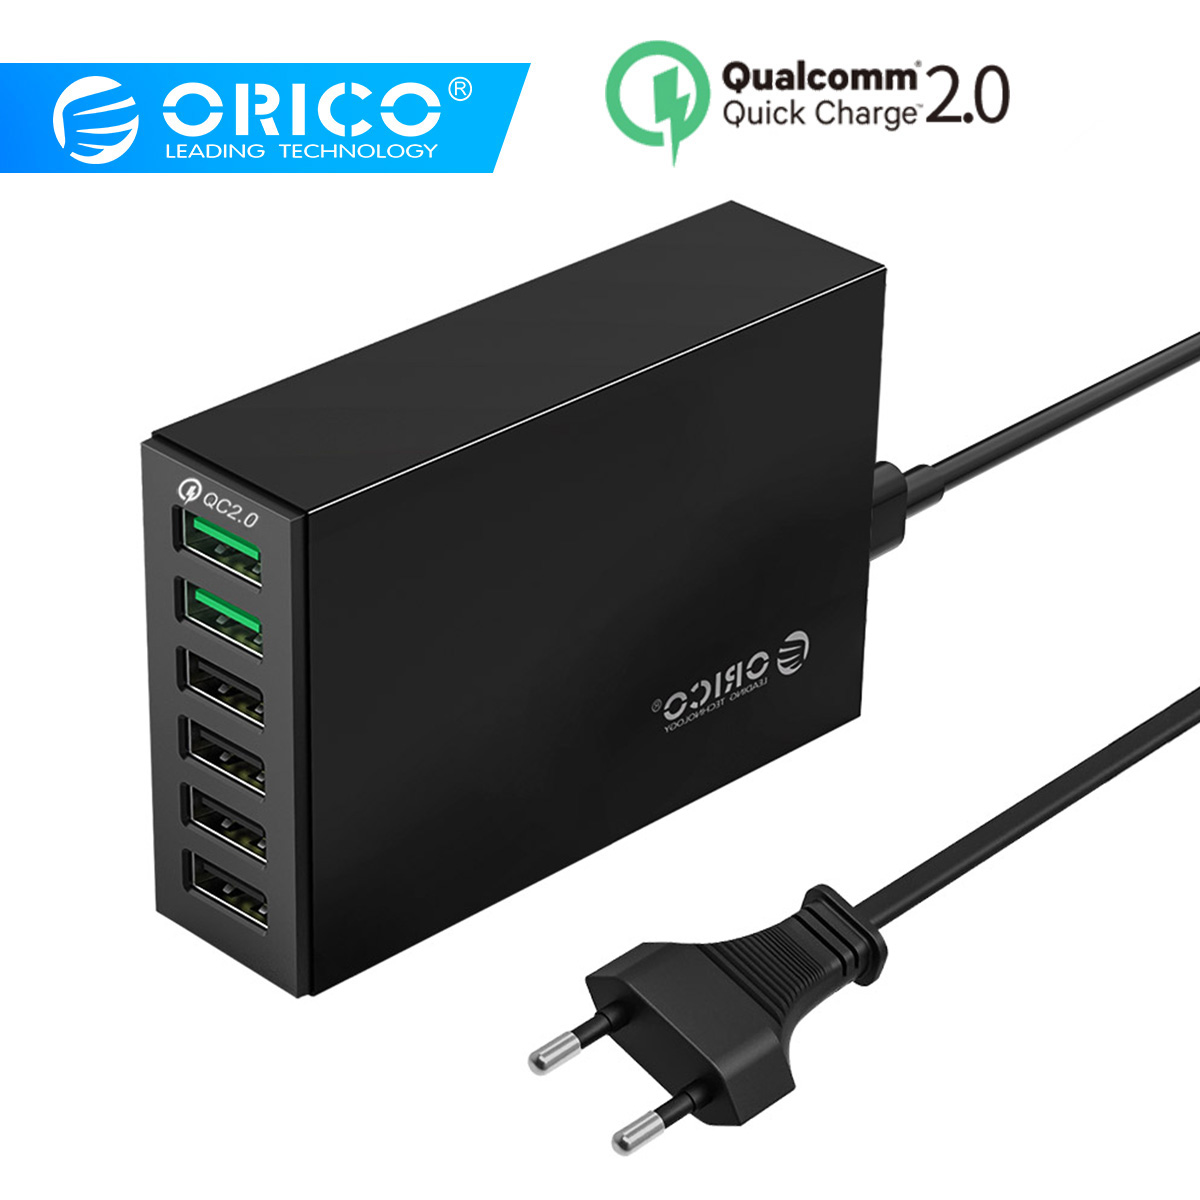 ORICO QSL-6U 6 Ports QC2.0 Quick USB Charger Mobile Phone Charger  for Samsung Huawei LG Iphone Adapter EU/US/UK/AU Plug